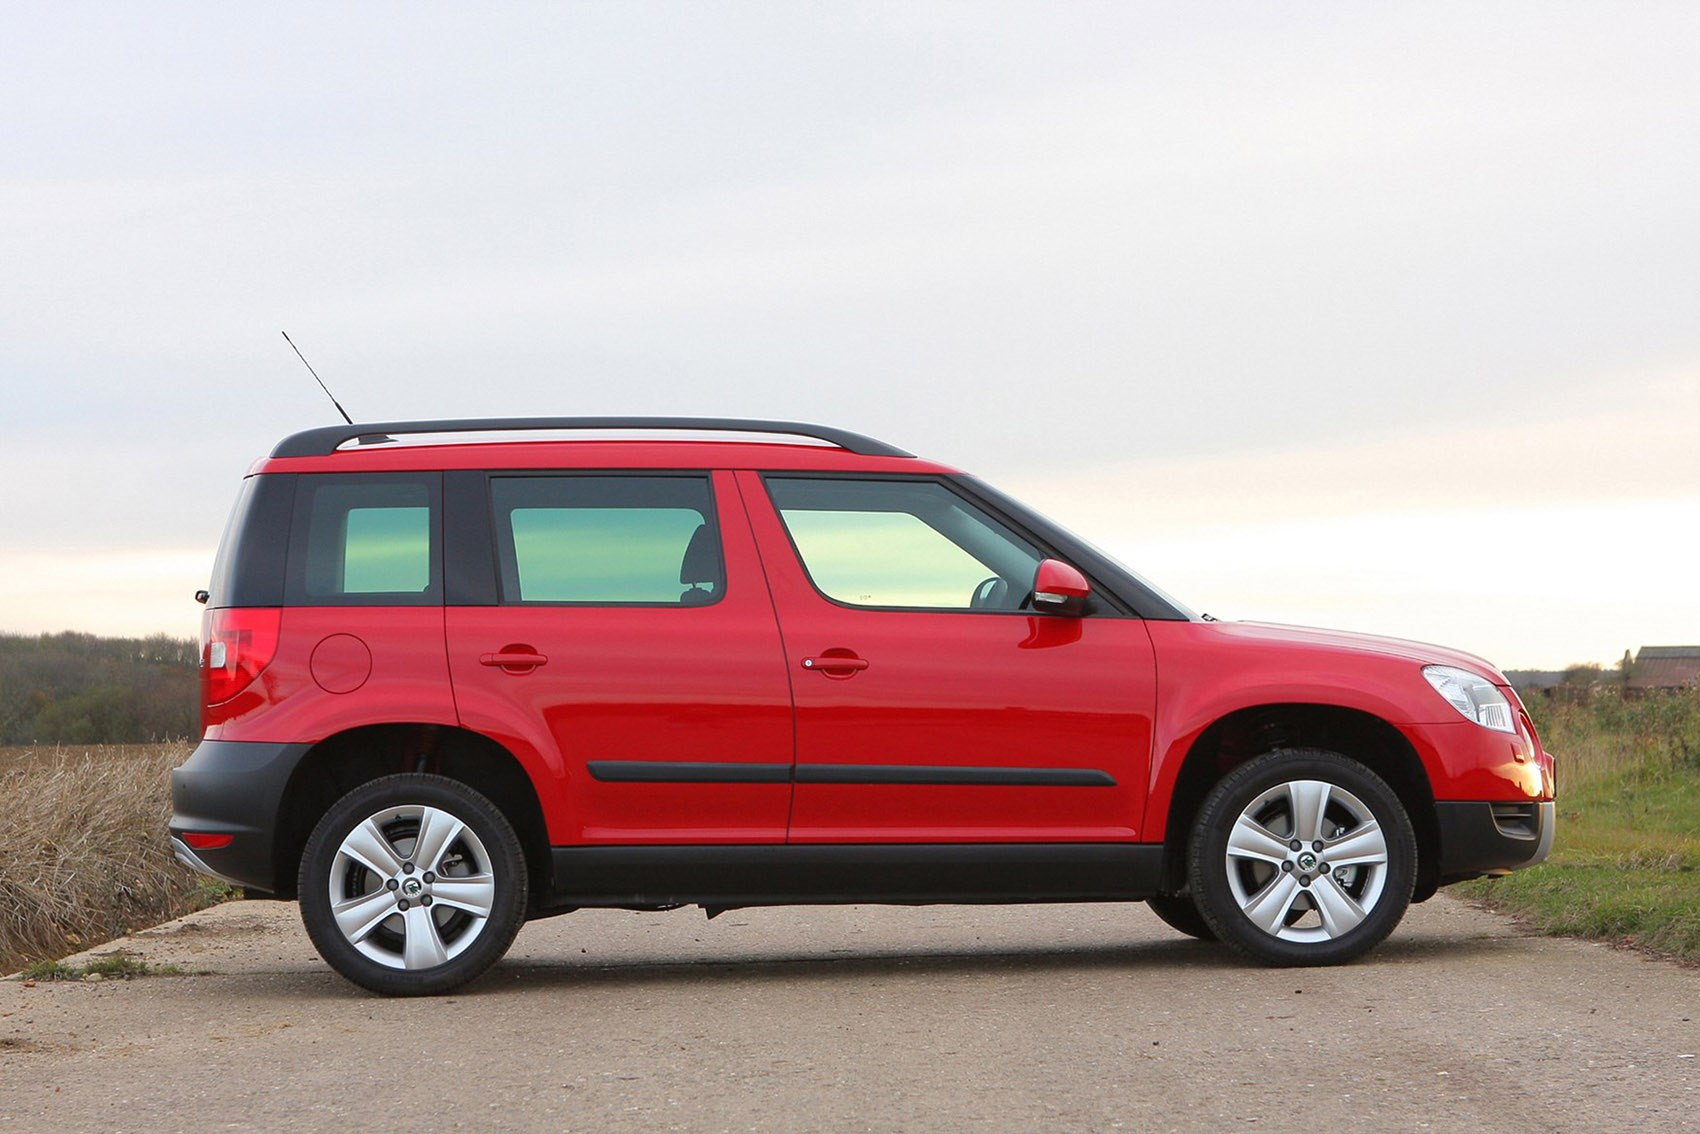 Skoda Yeti - the best family SUVs